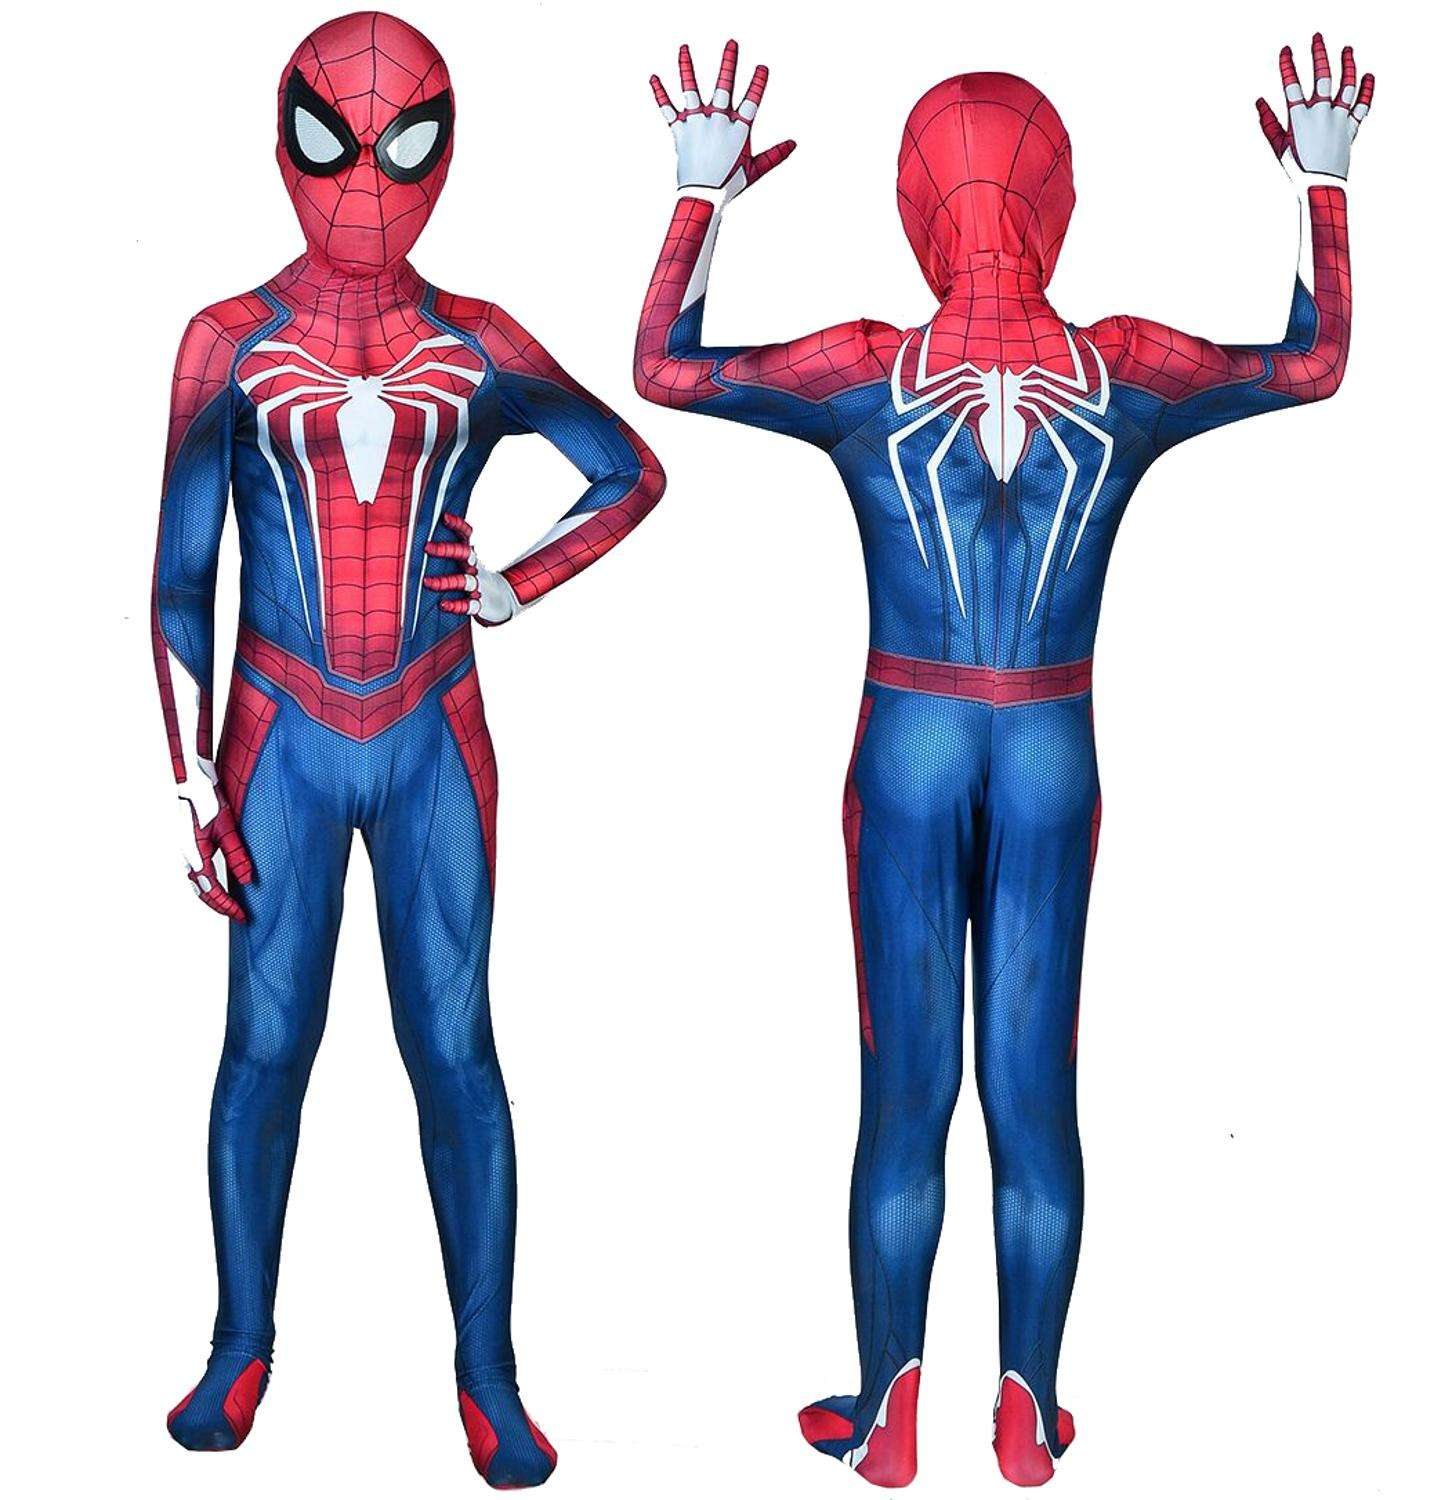 Kids Spiderman Costume 3D Print Spider Game PS4不眠症Spiderman Cosplay Bodysuit Halloween Zentai Suit